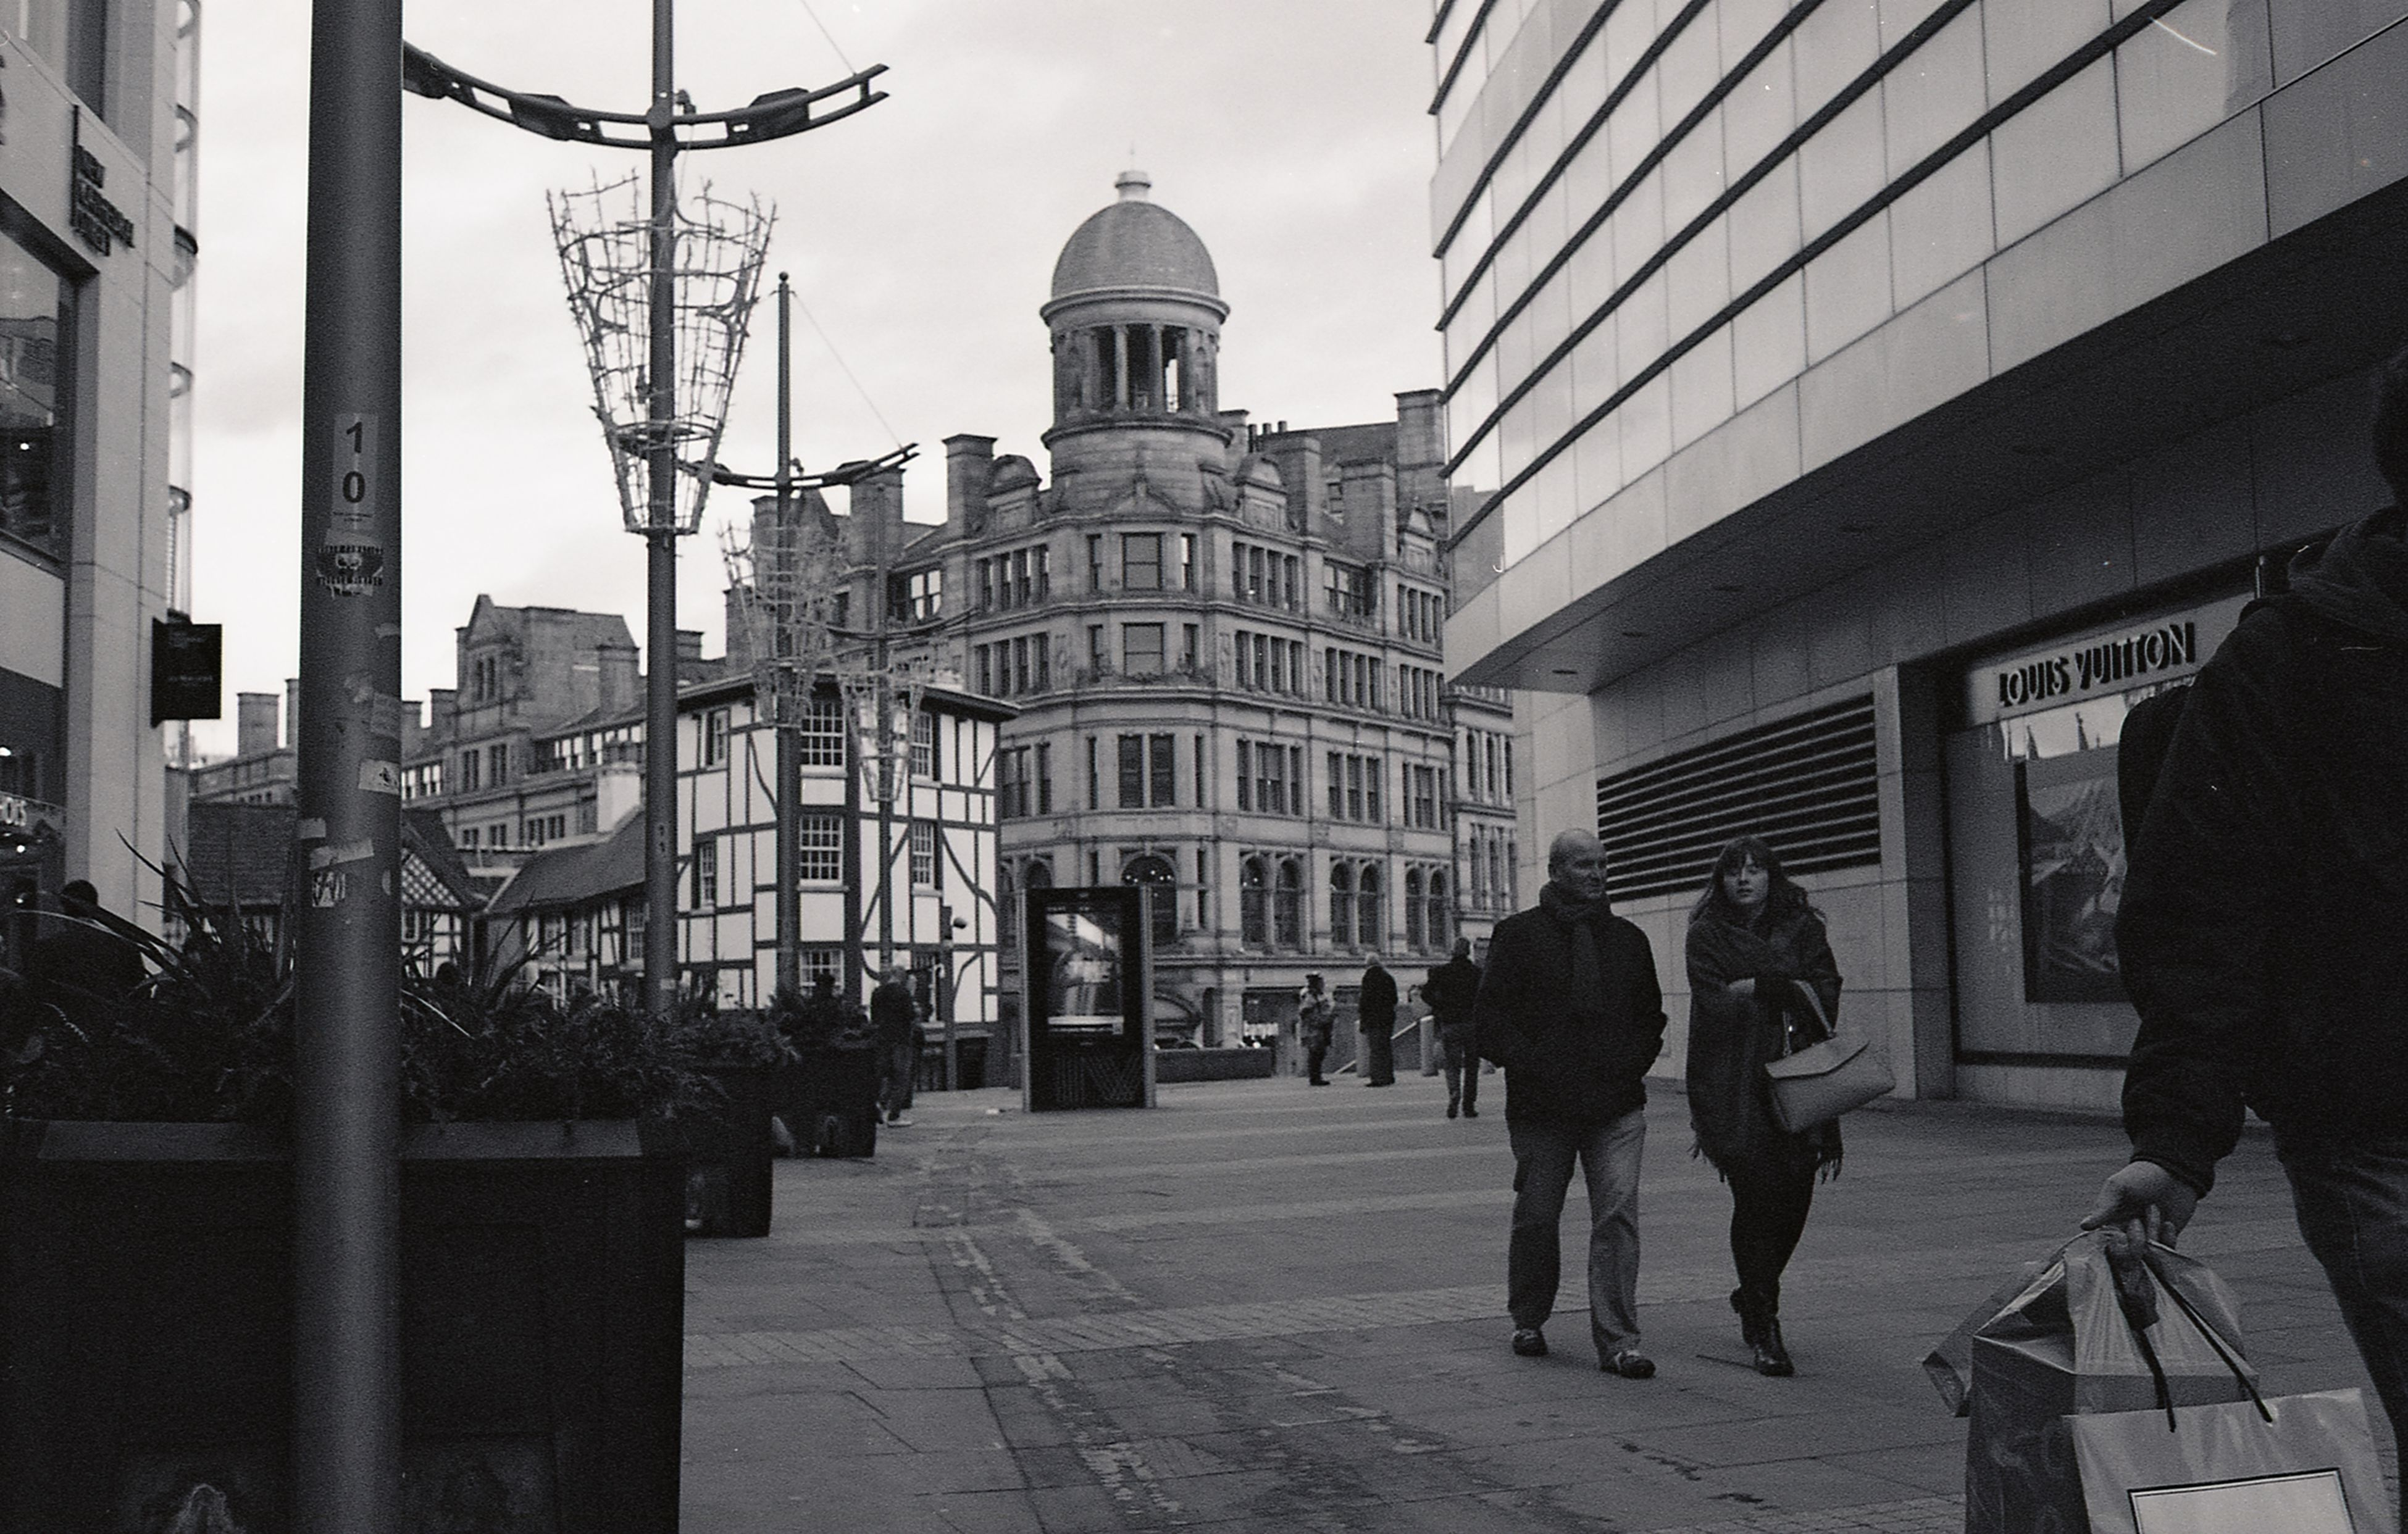 building exterior, architecture, built structure, city, men, walking, street, city life, person, lifestyles, building, day, leisure activity, sky, full length, incidental people, outdoors, rear view, communication